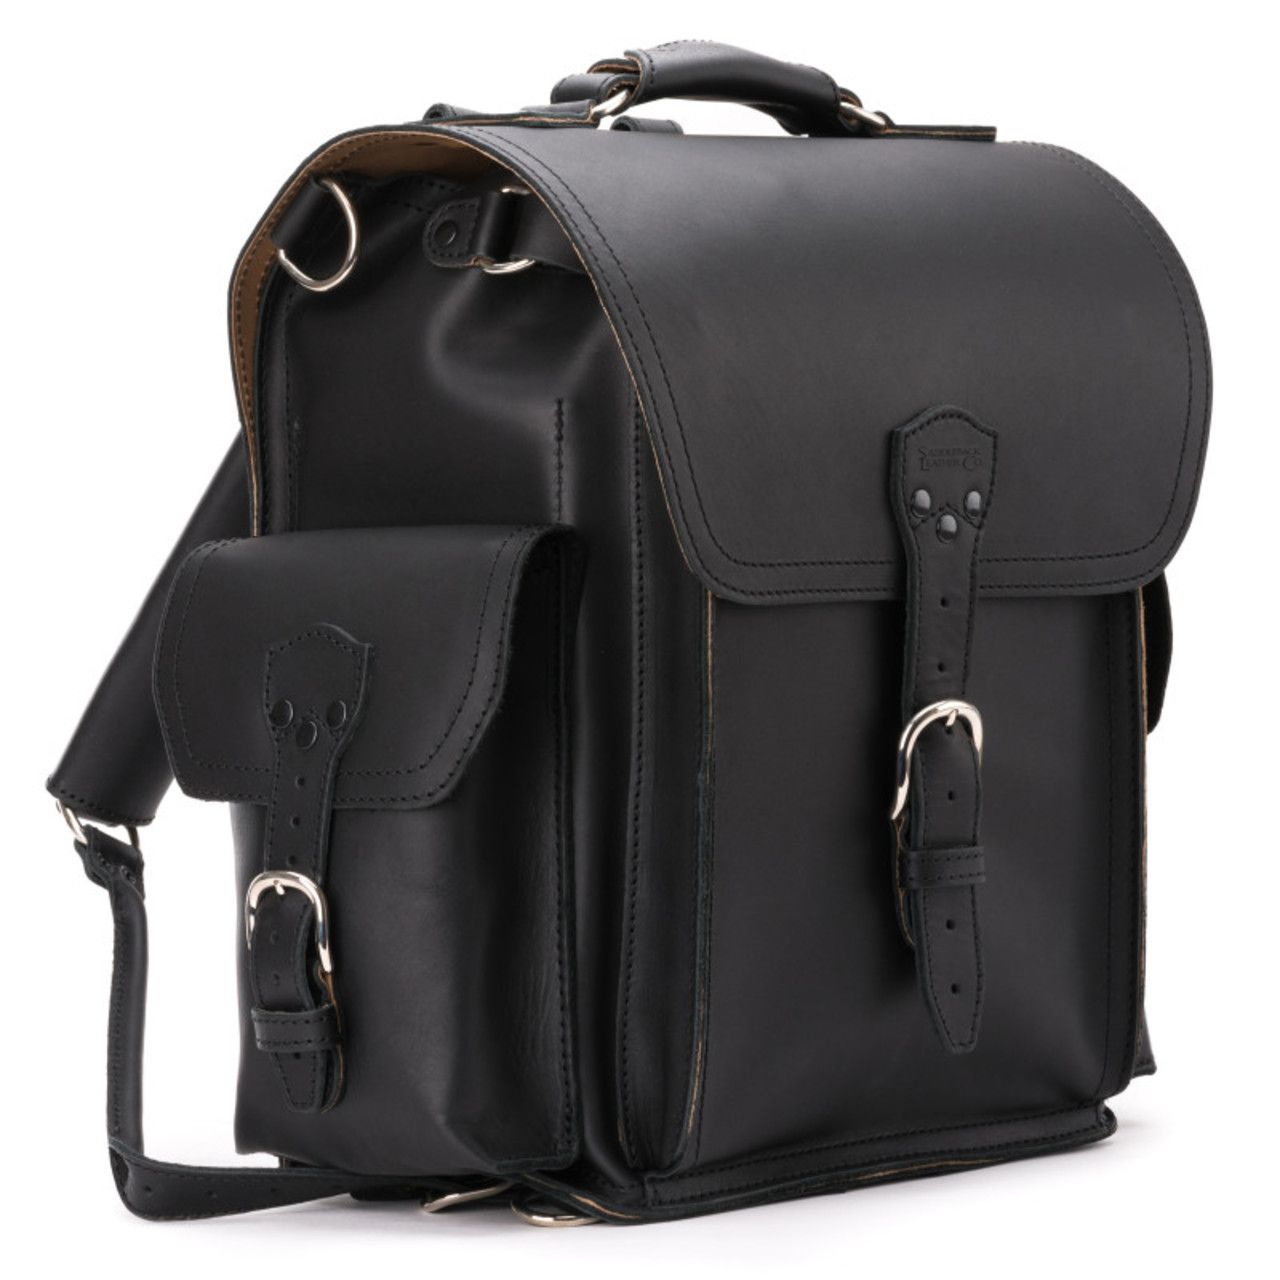 squared leather backpack in black leather